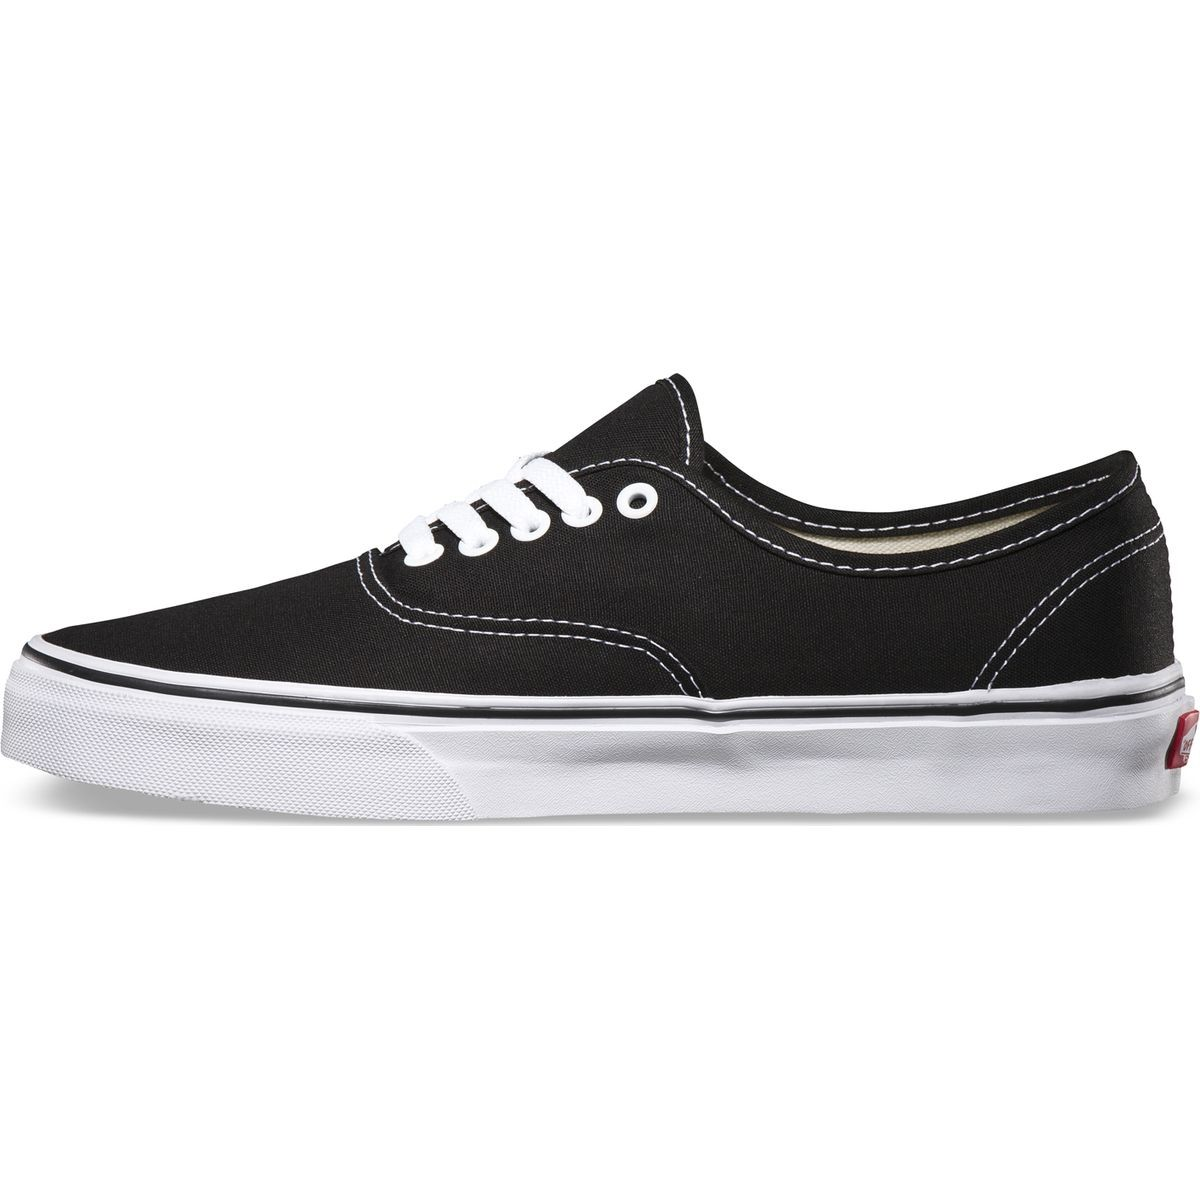 Vans Original Authentic Shoes - Black - 7.0 a34f6a2ceef0